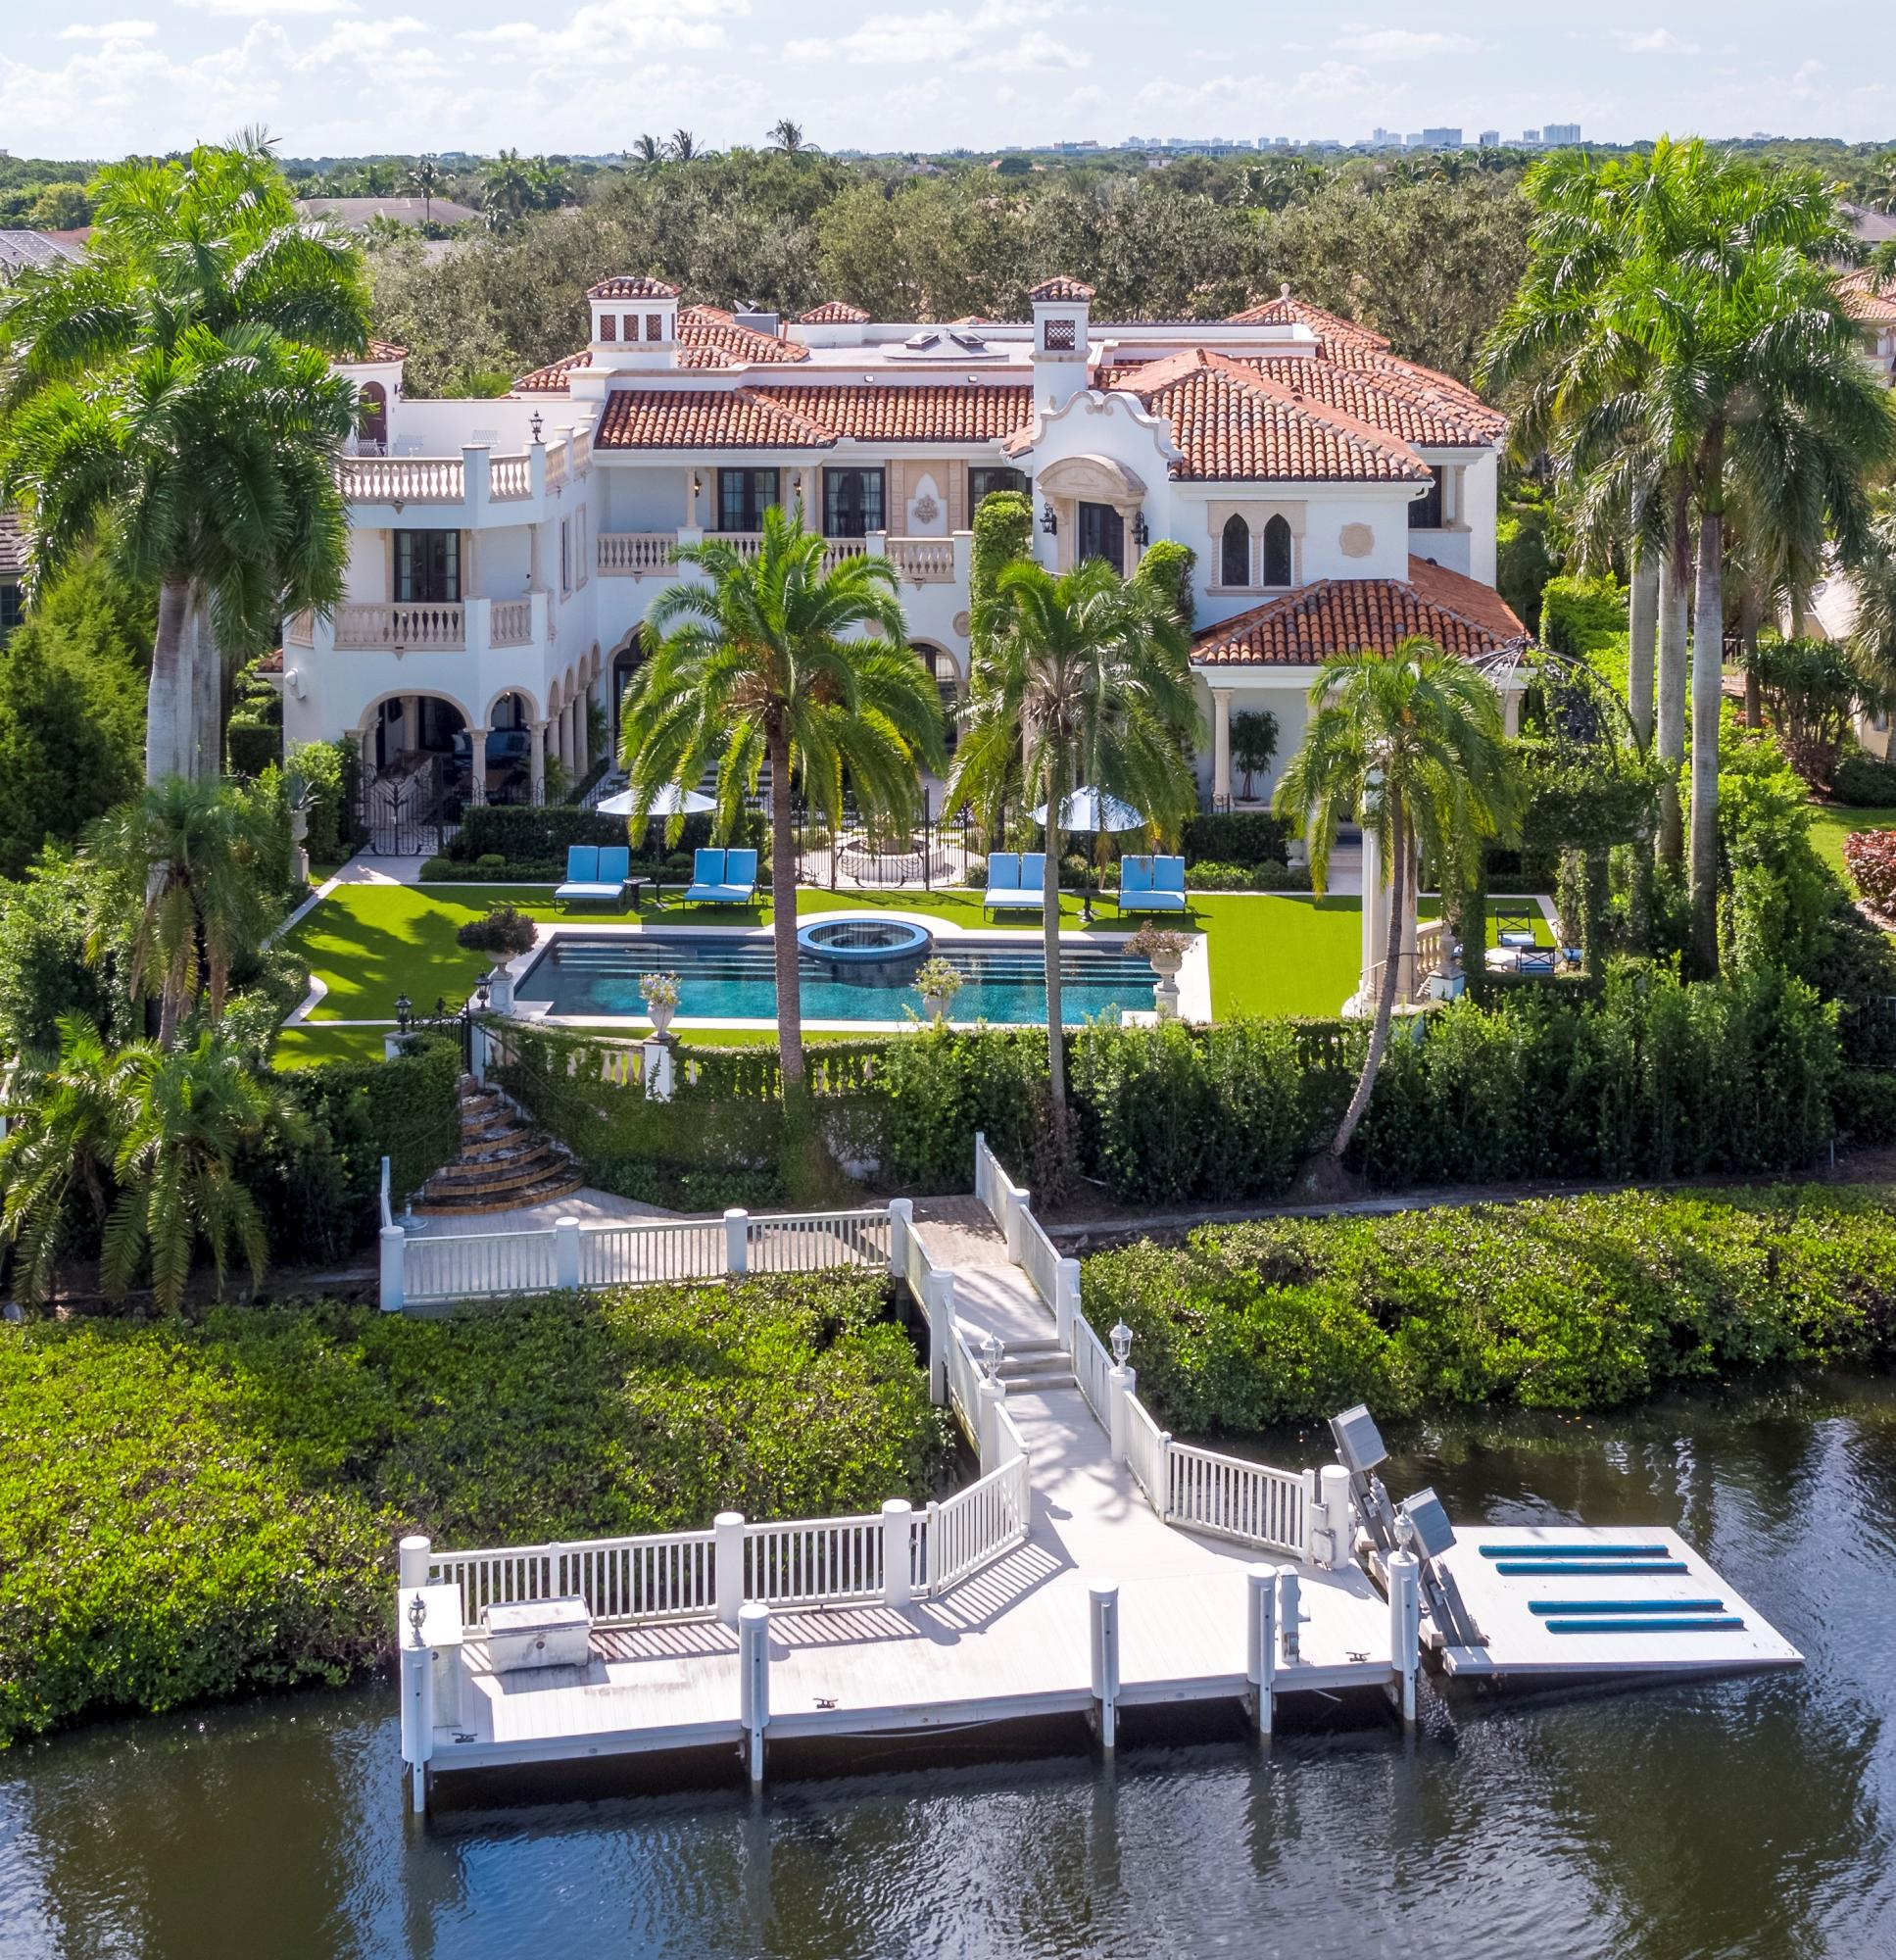 370 Eagle Drive, Jupiter, Florida 33477, 9 Bedrooms Bedrooms, ,11.3 BathroomsBathrooms,A,Single family,Eagle,RX-10656761